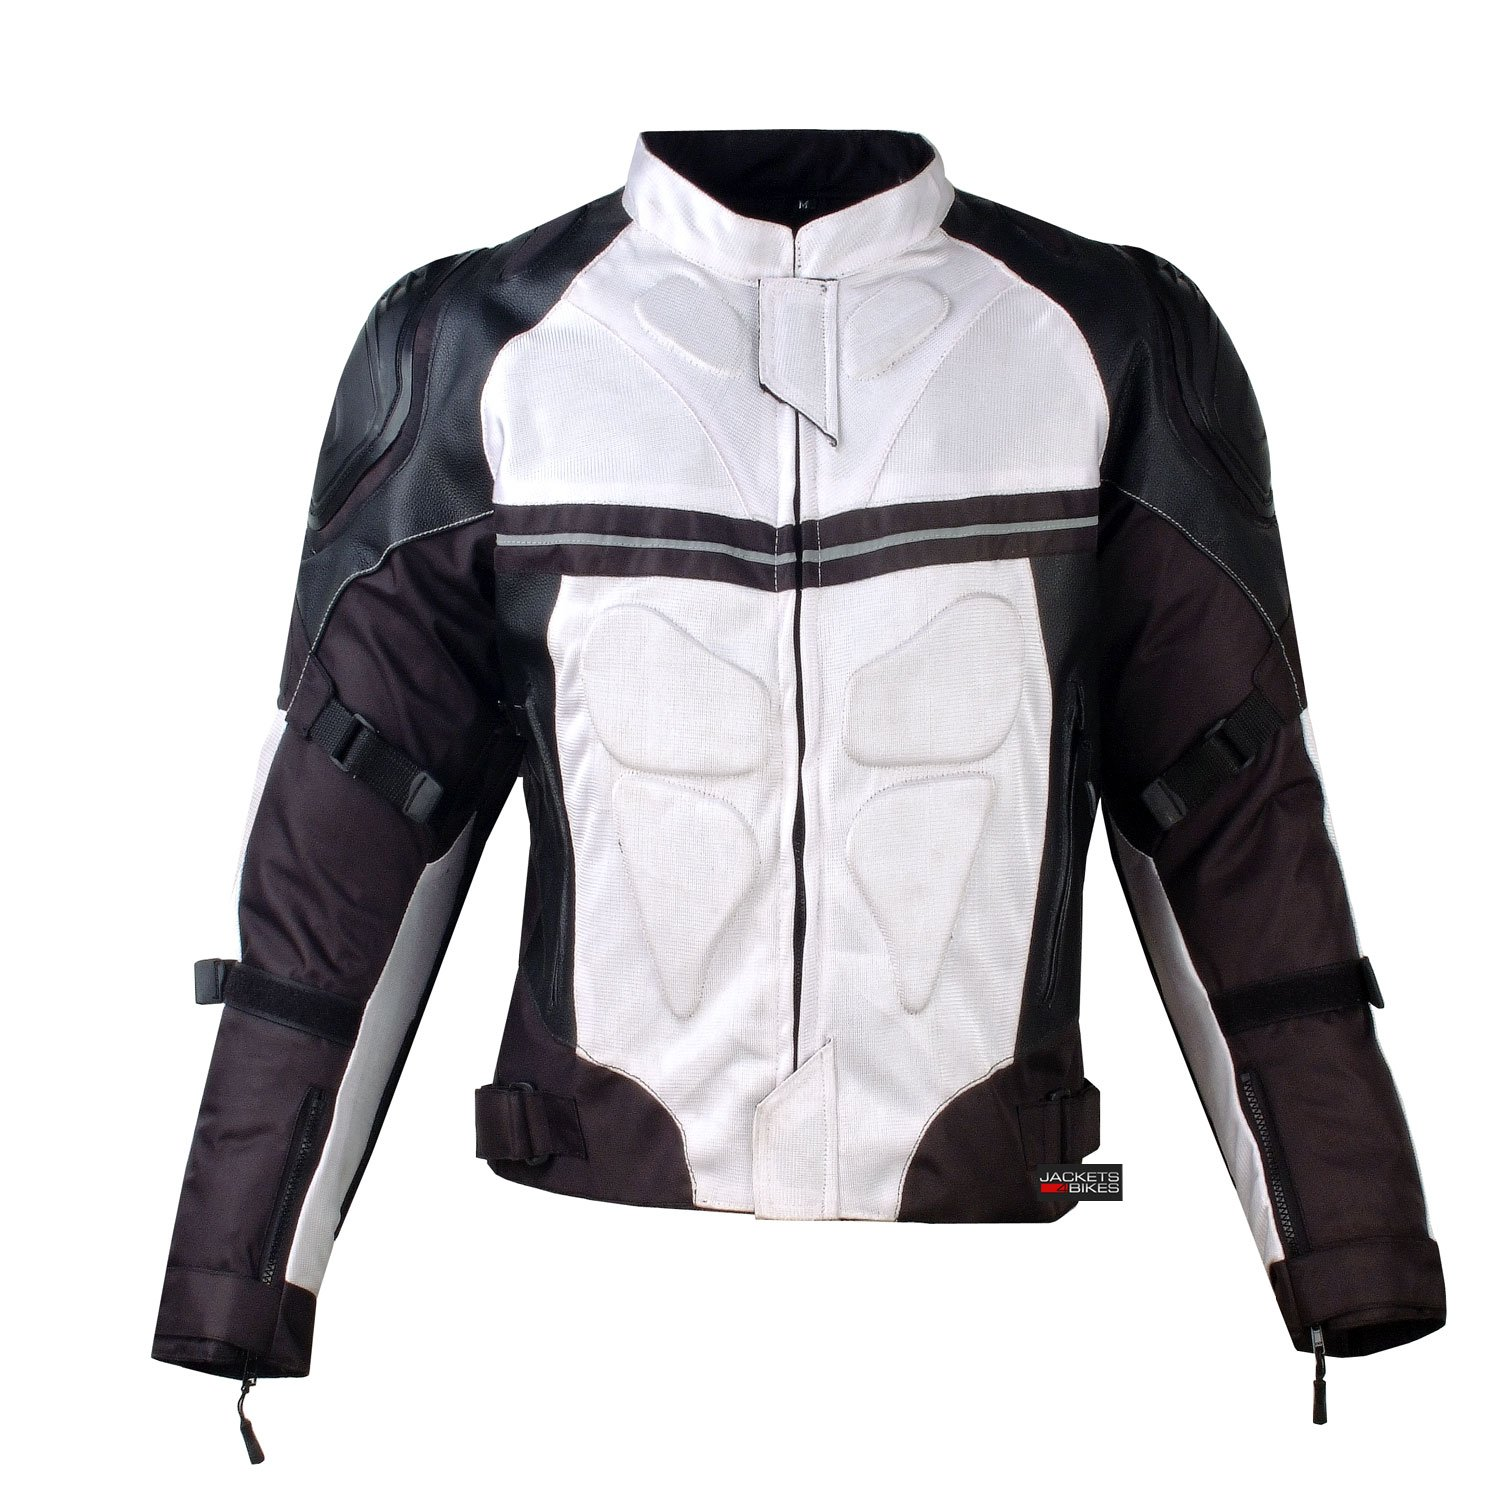 PRO LEATHER /& MESH MOTORCYCLE WATERPROOF JACKET WHITE WITH EXTERNAL ARMOR XXL